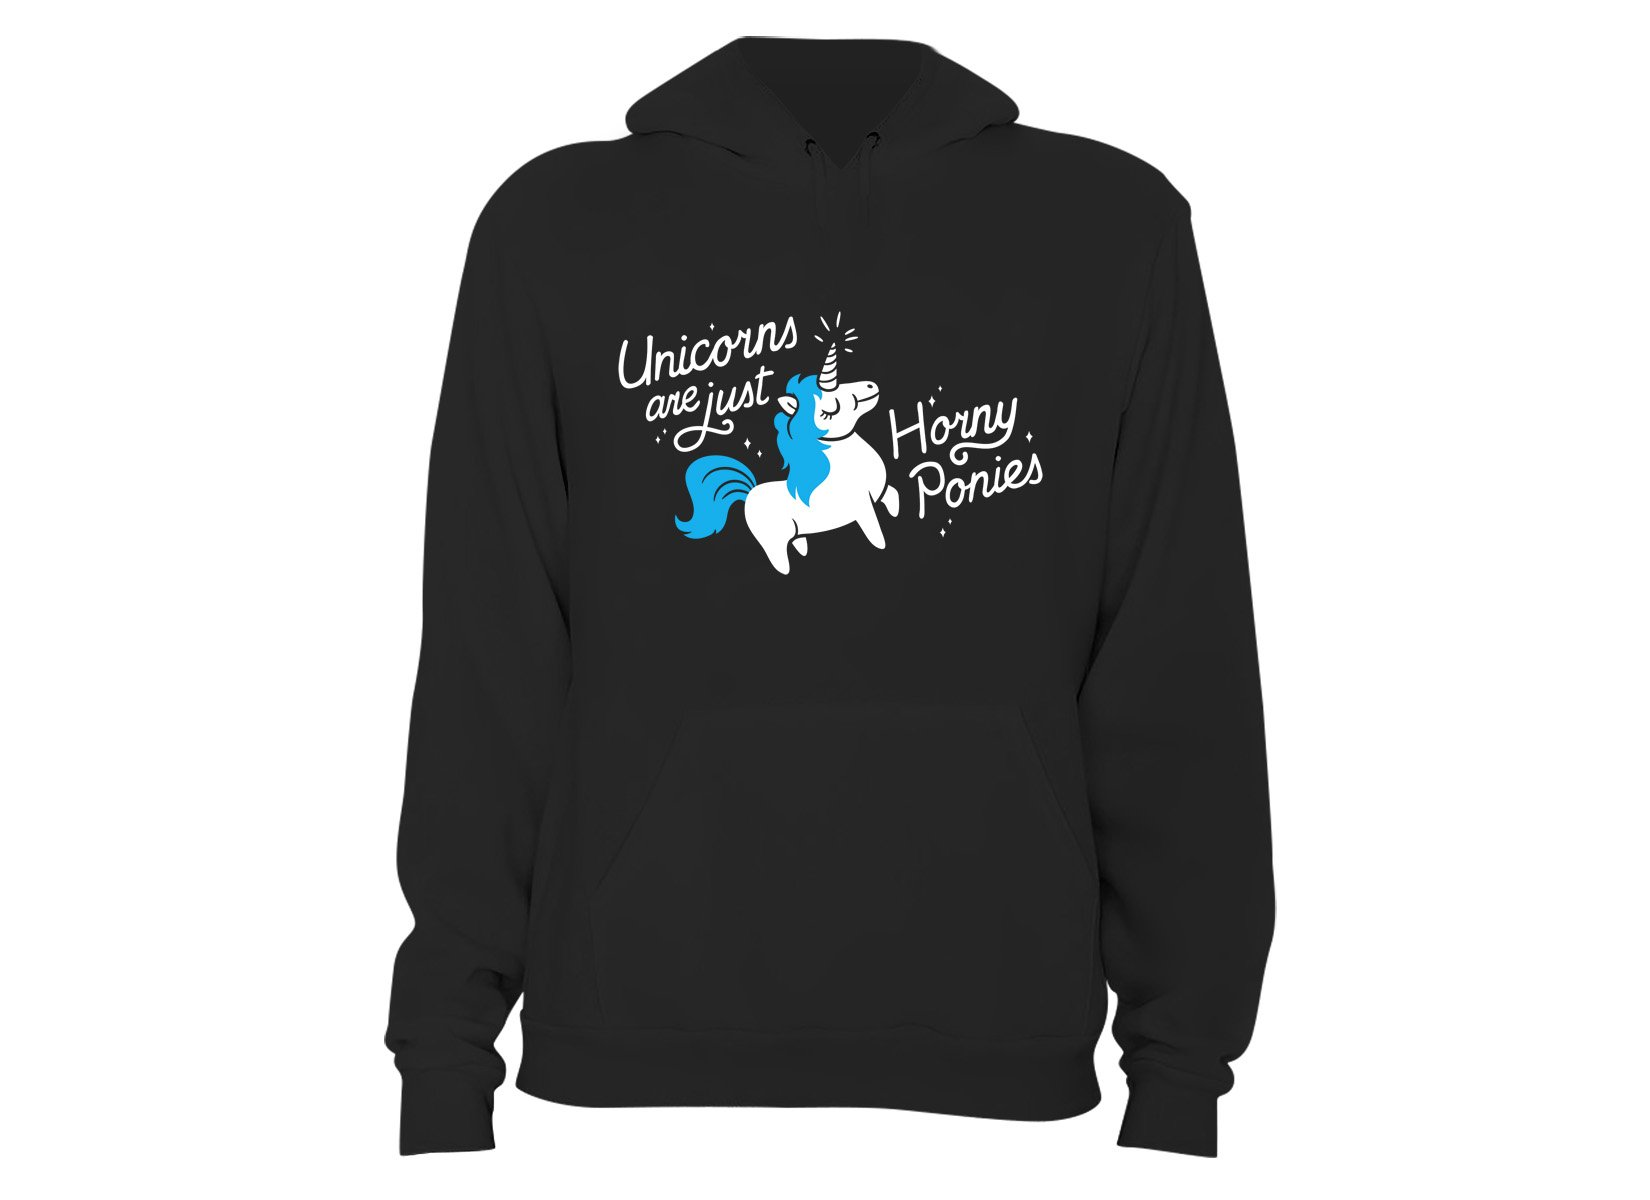 Unicorns Are Just Horny Ponies on Hoodie